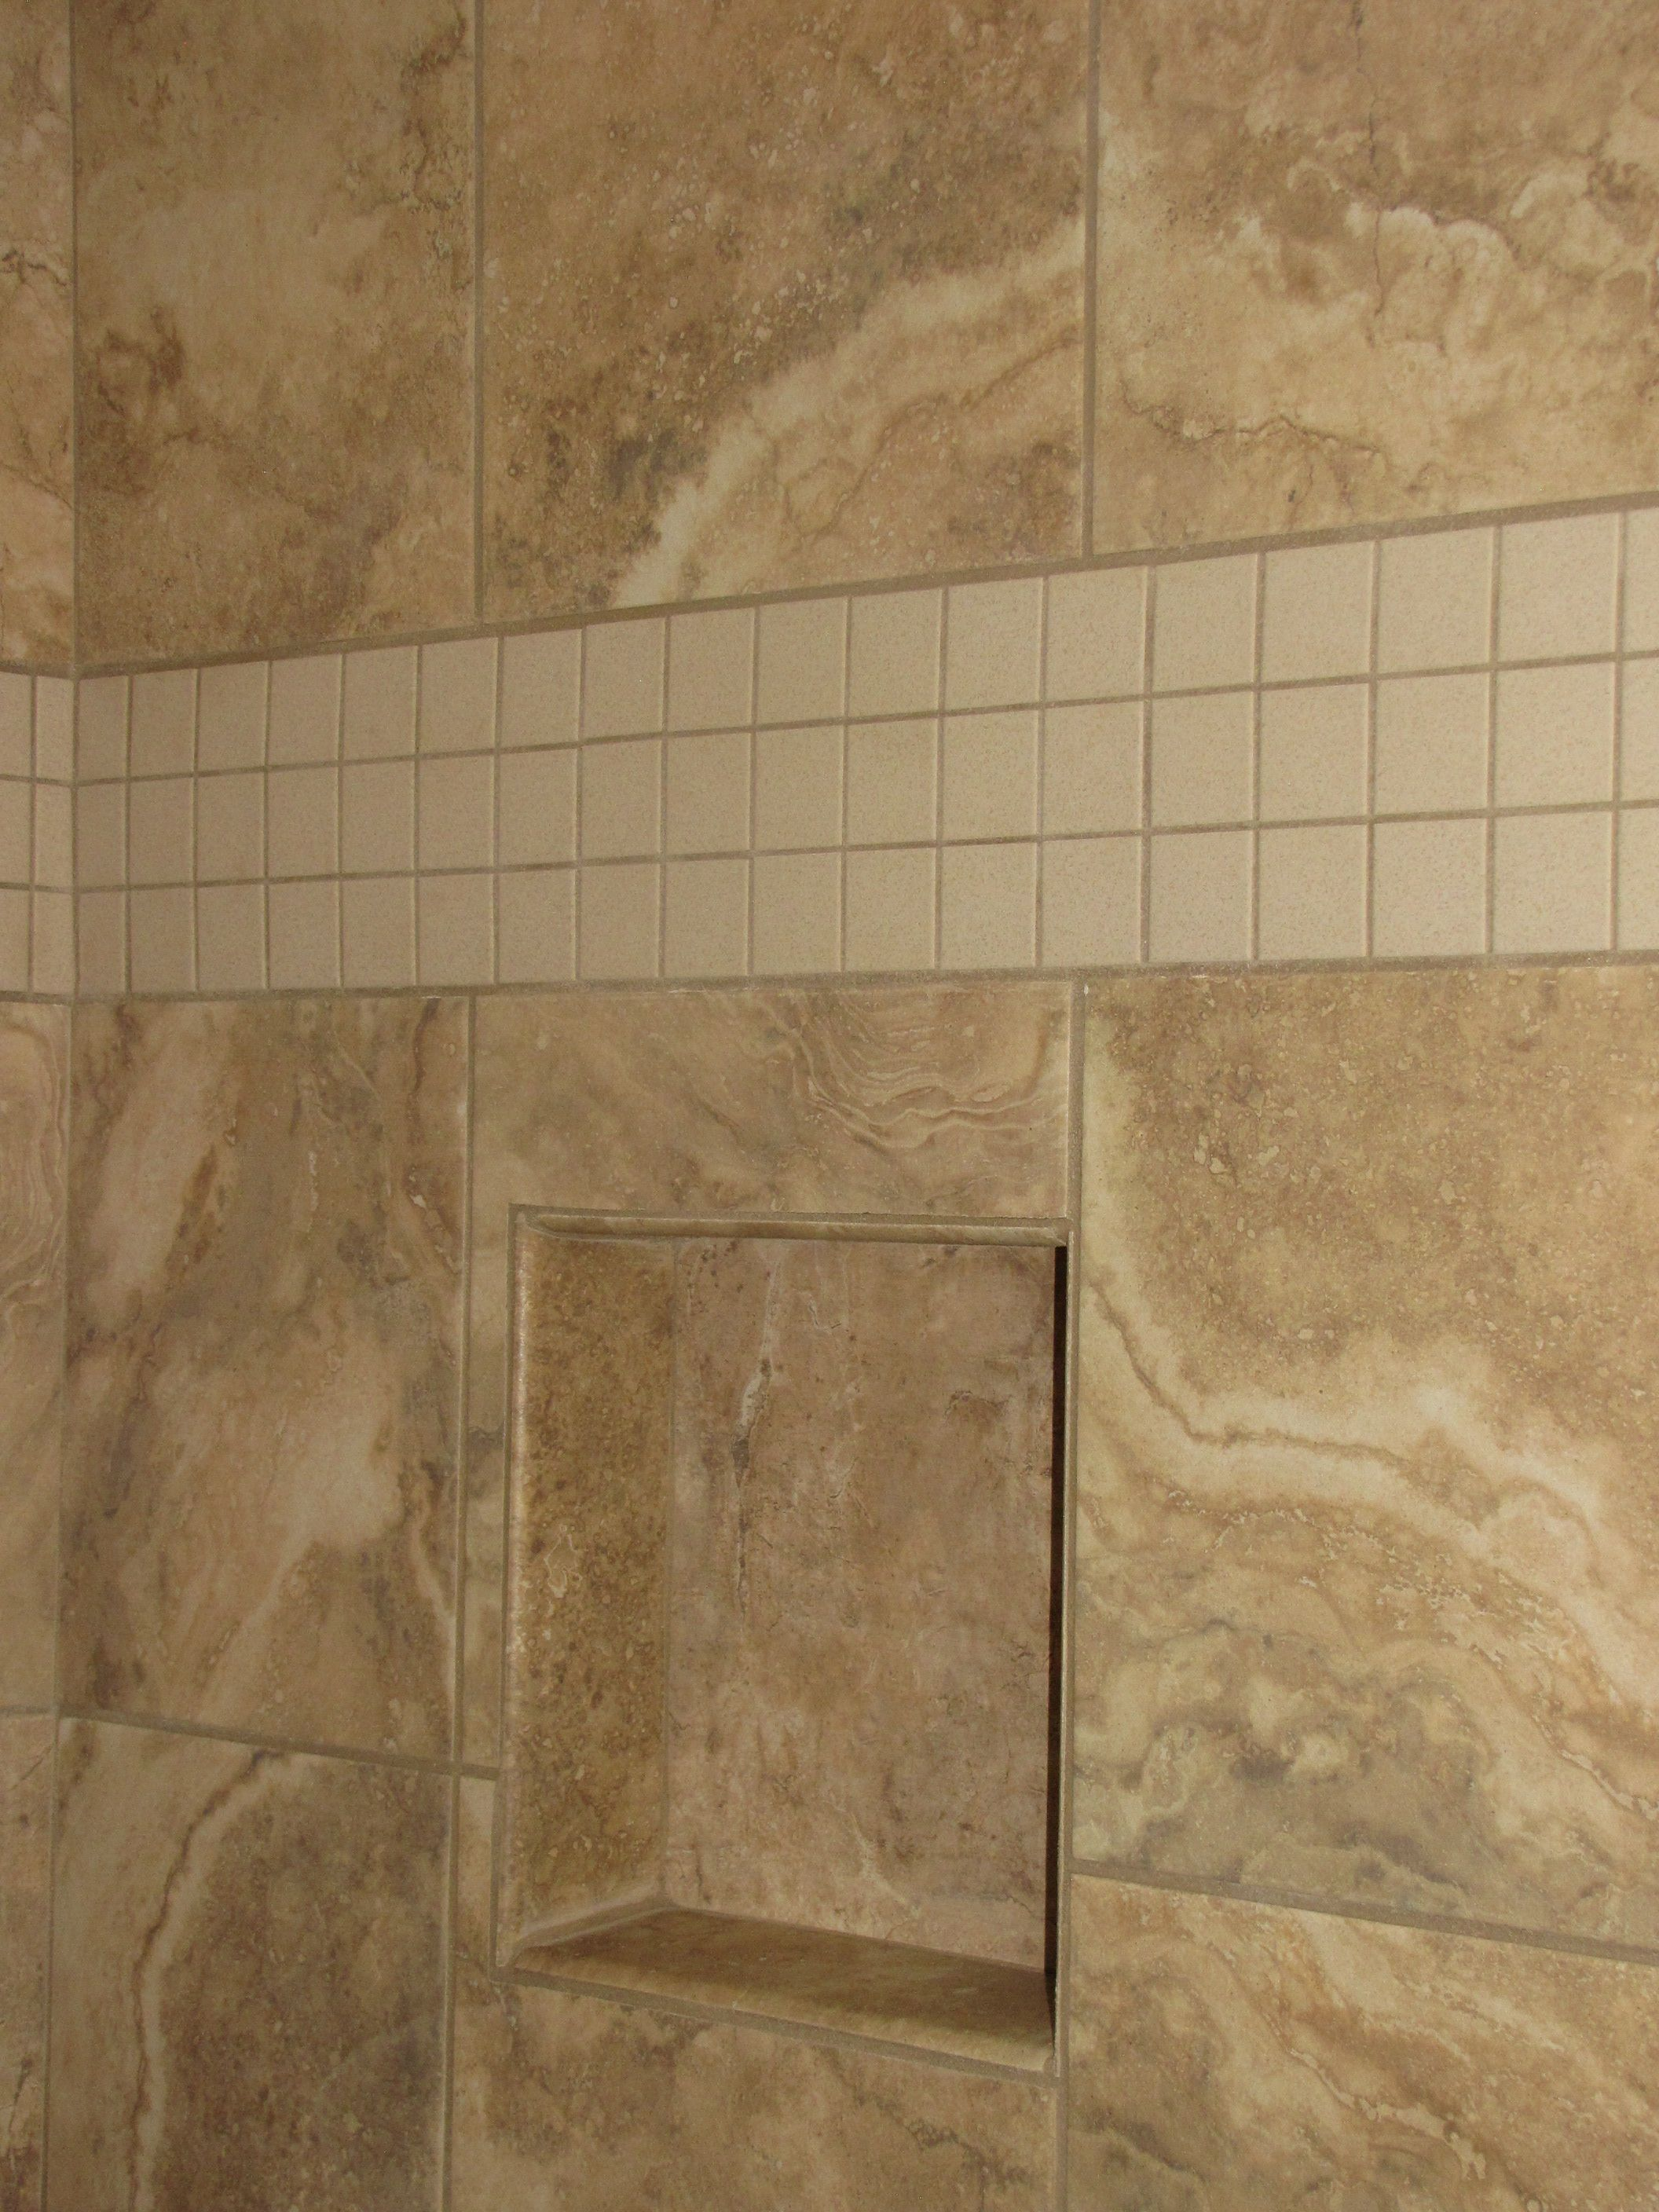 Standard tile travertino royal noce tile with upgrade accent of standard tile travertino royal noce tile with upgrade accent of 3 rows of dailygadgetfo Gallery